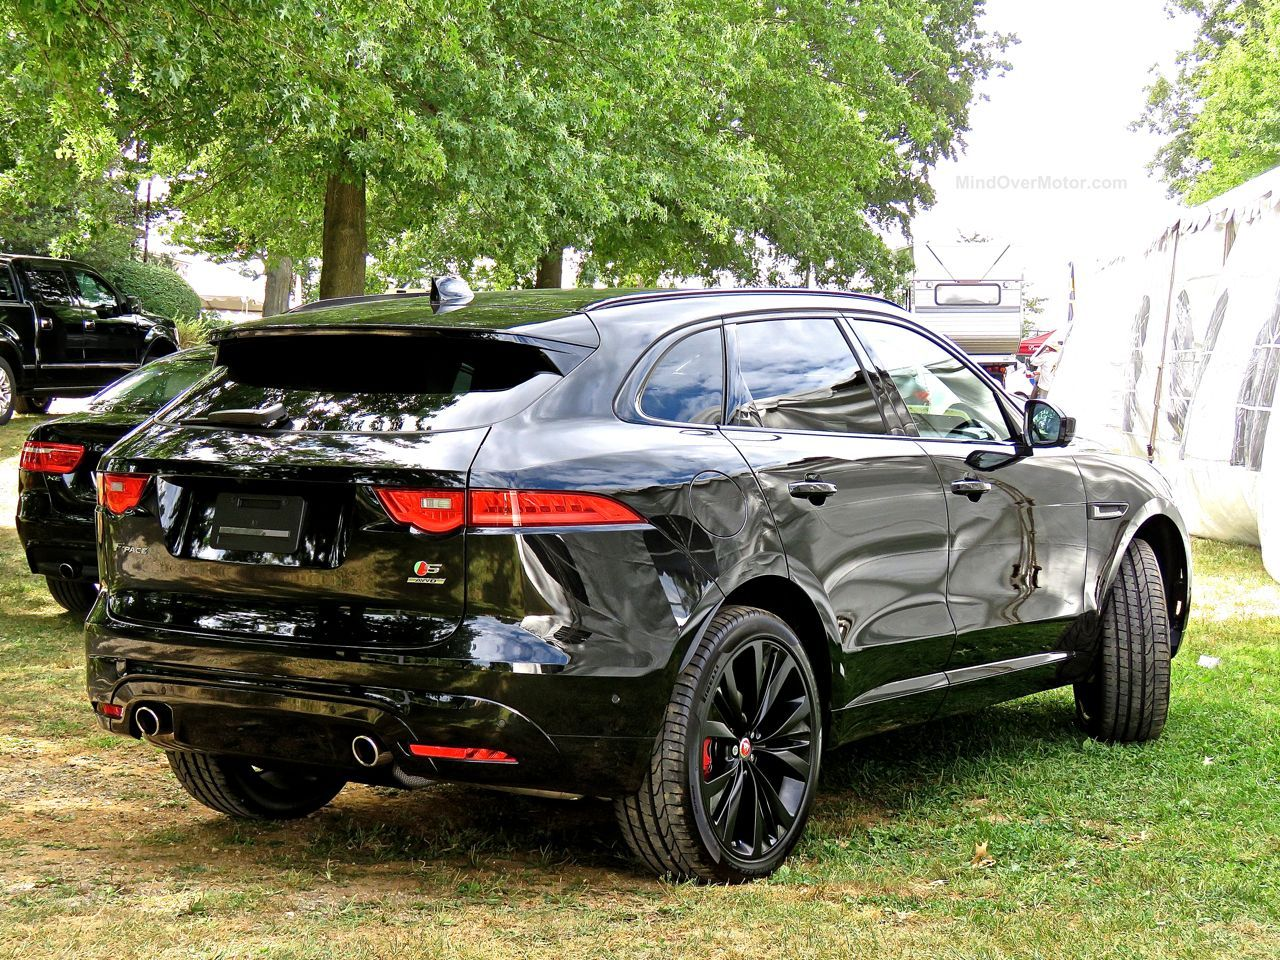 11 Jaguar F Pace Ideas Jaguar Jaguar Car Dream Cars